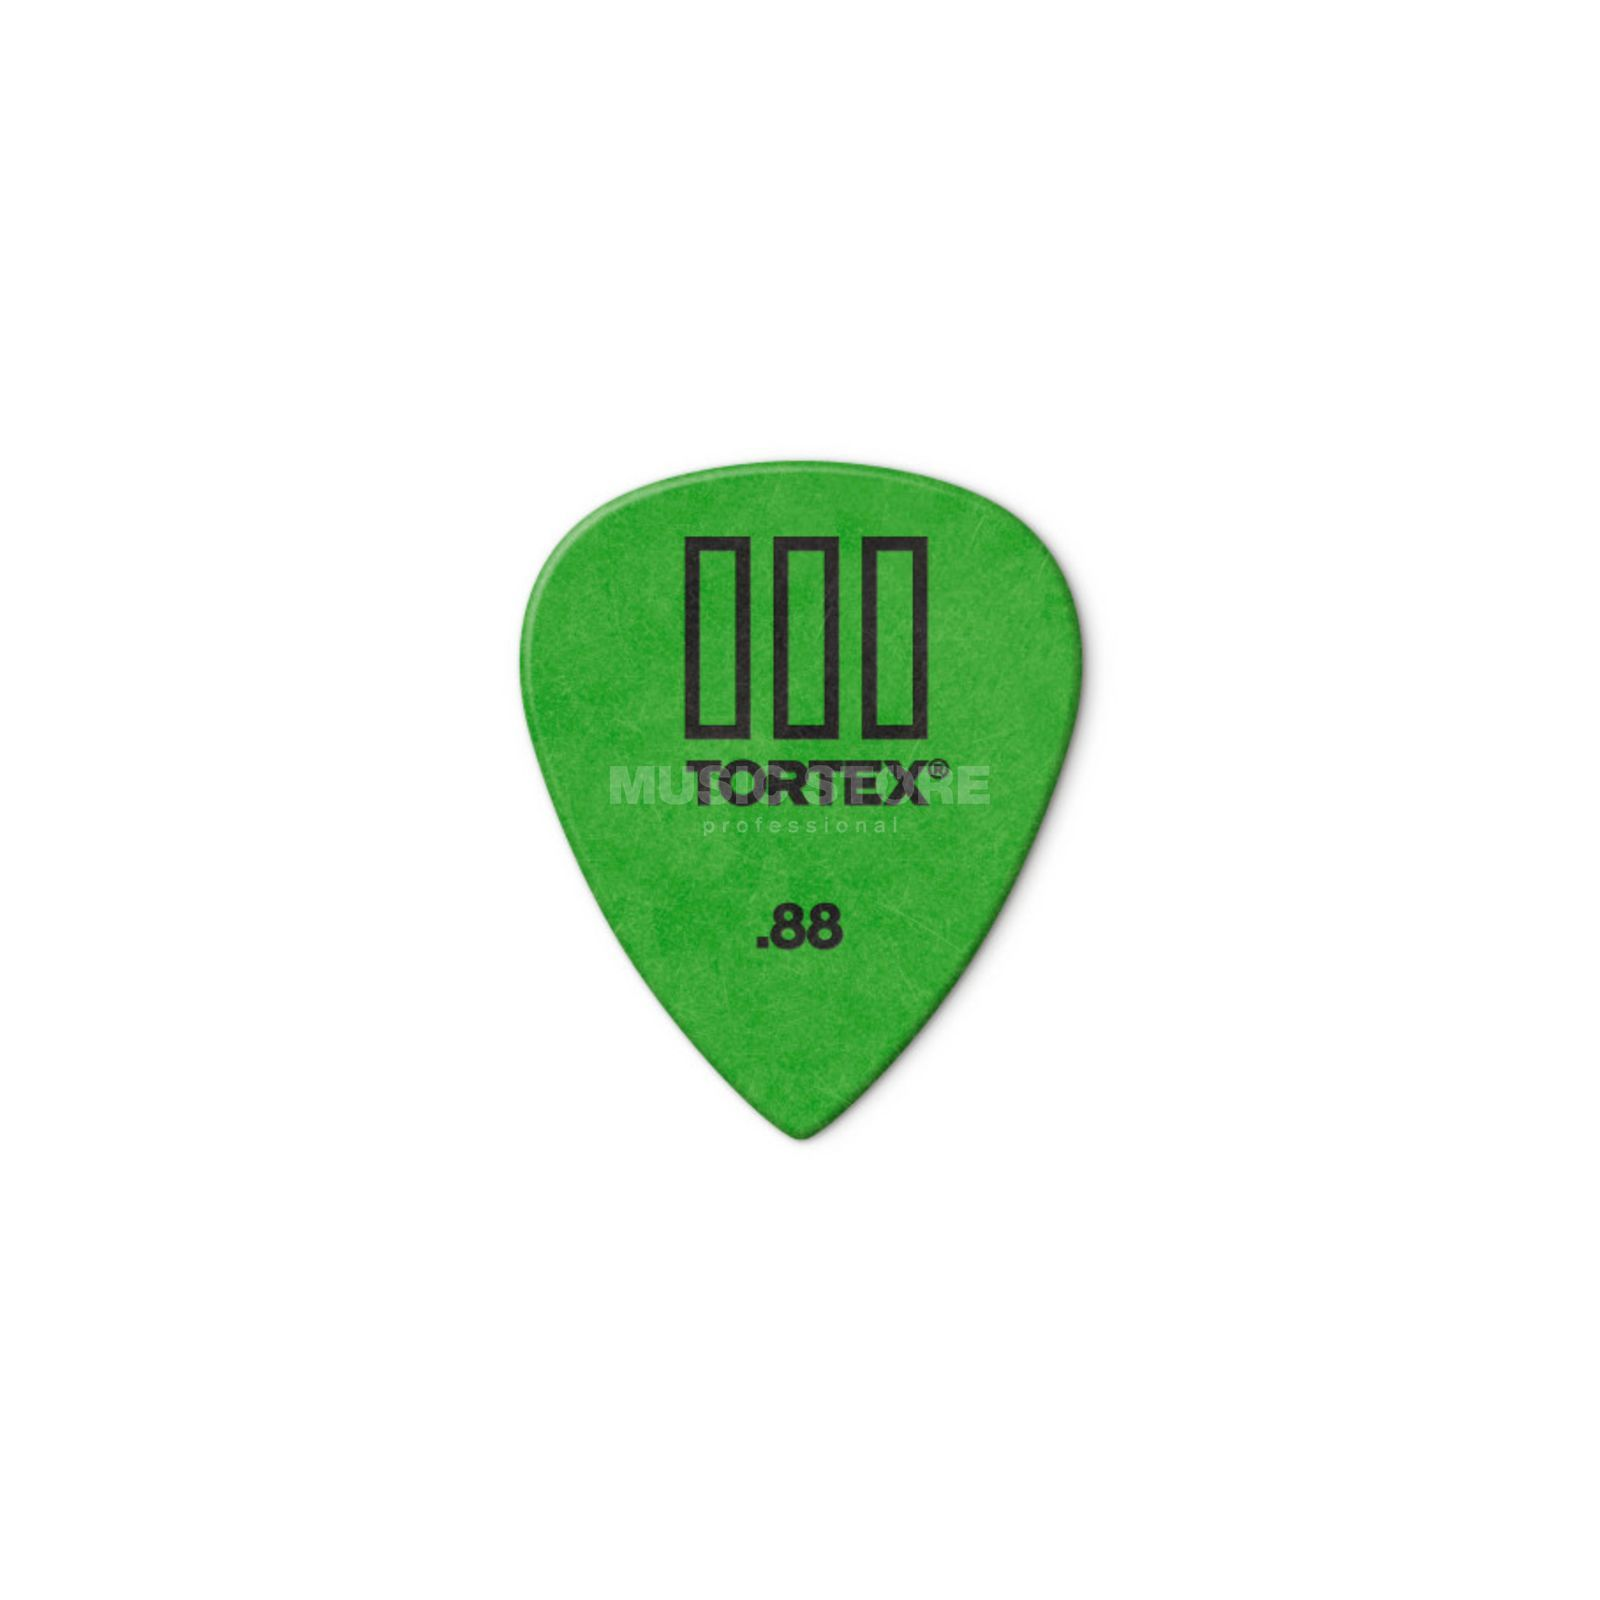 Dunlop Tortex III 462 Picks 0,88 72-Pack Produktbillede